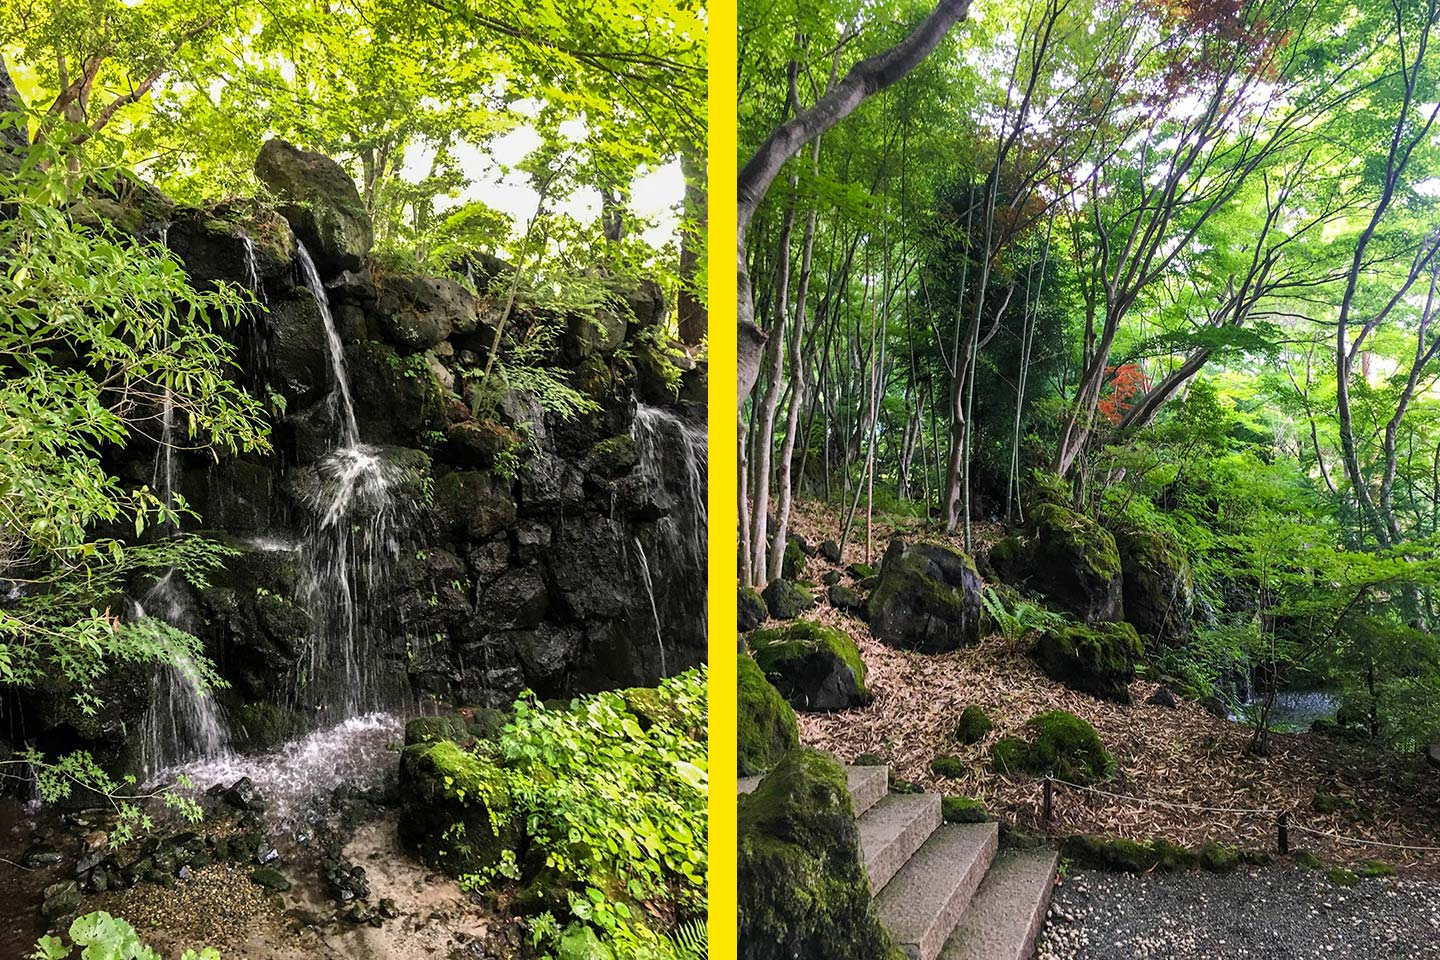 Waterfall and lush green forest on the grounds of  Itchiku Kubota kimono Museum